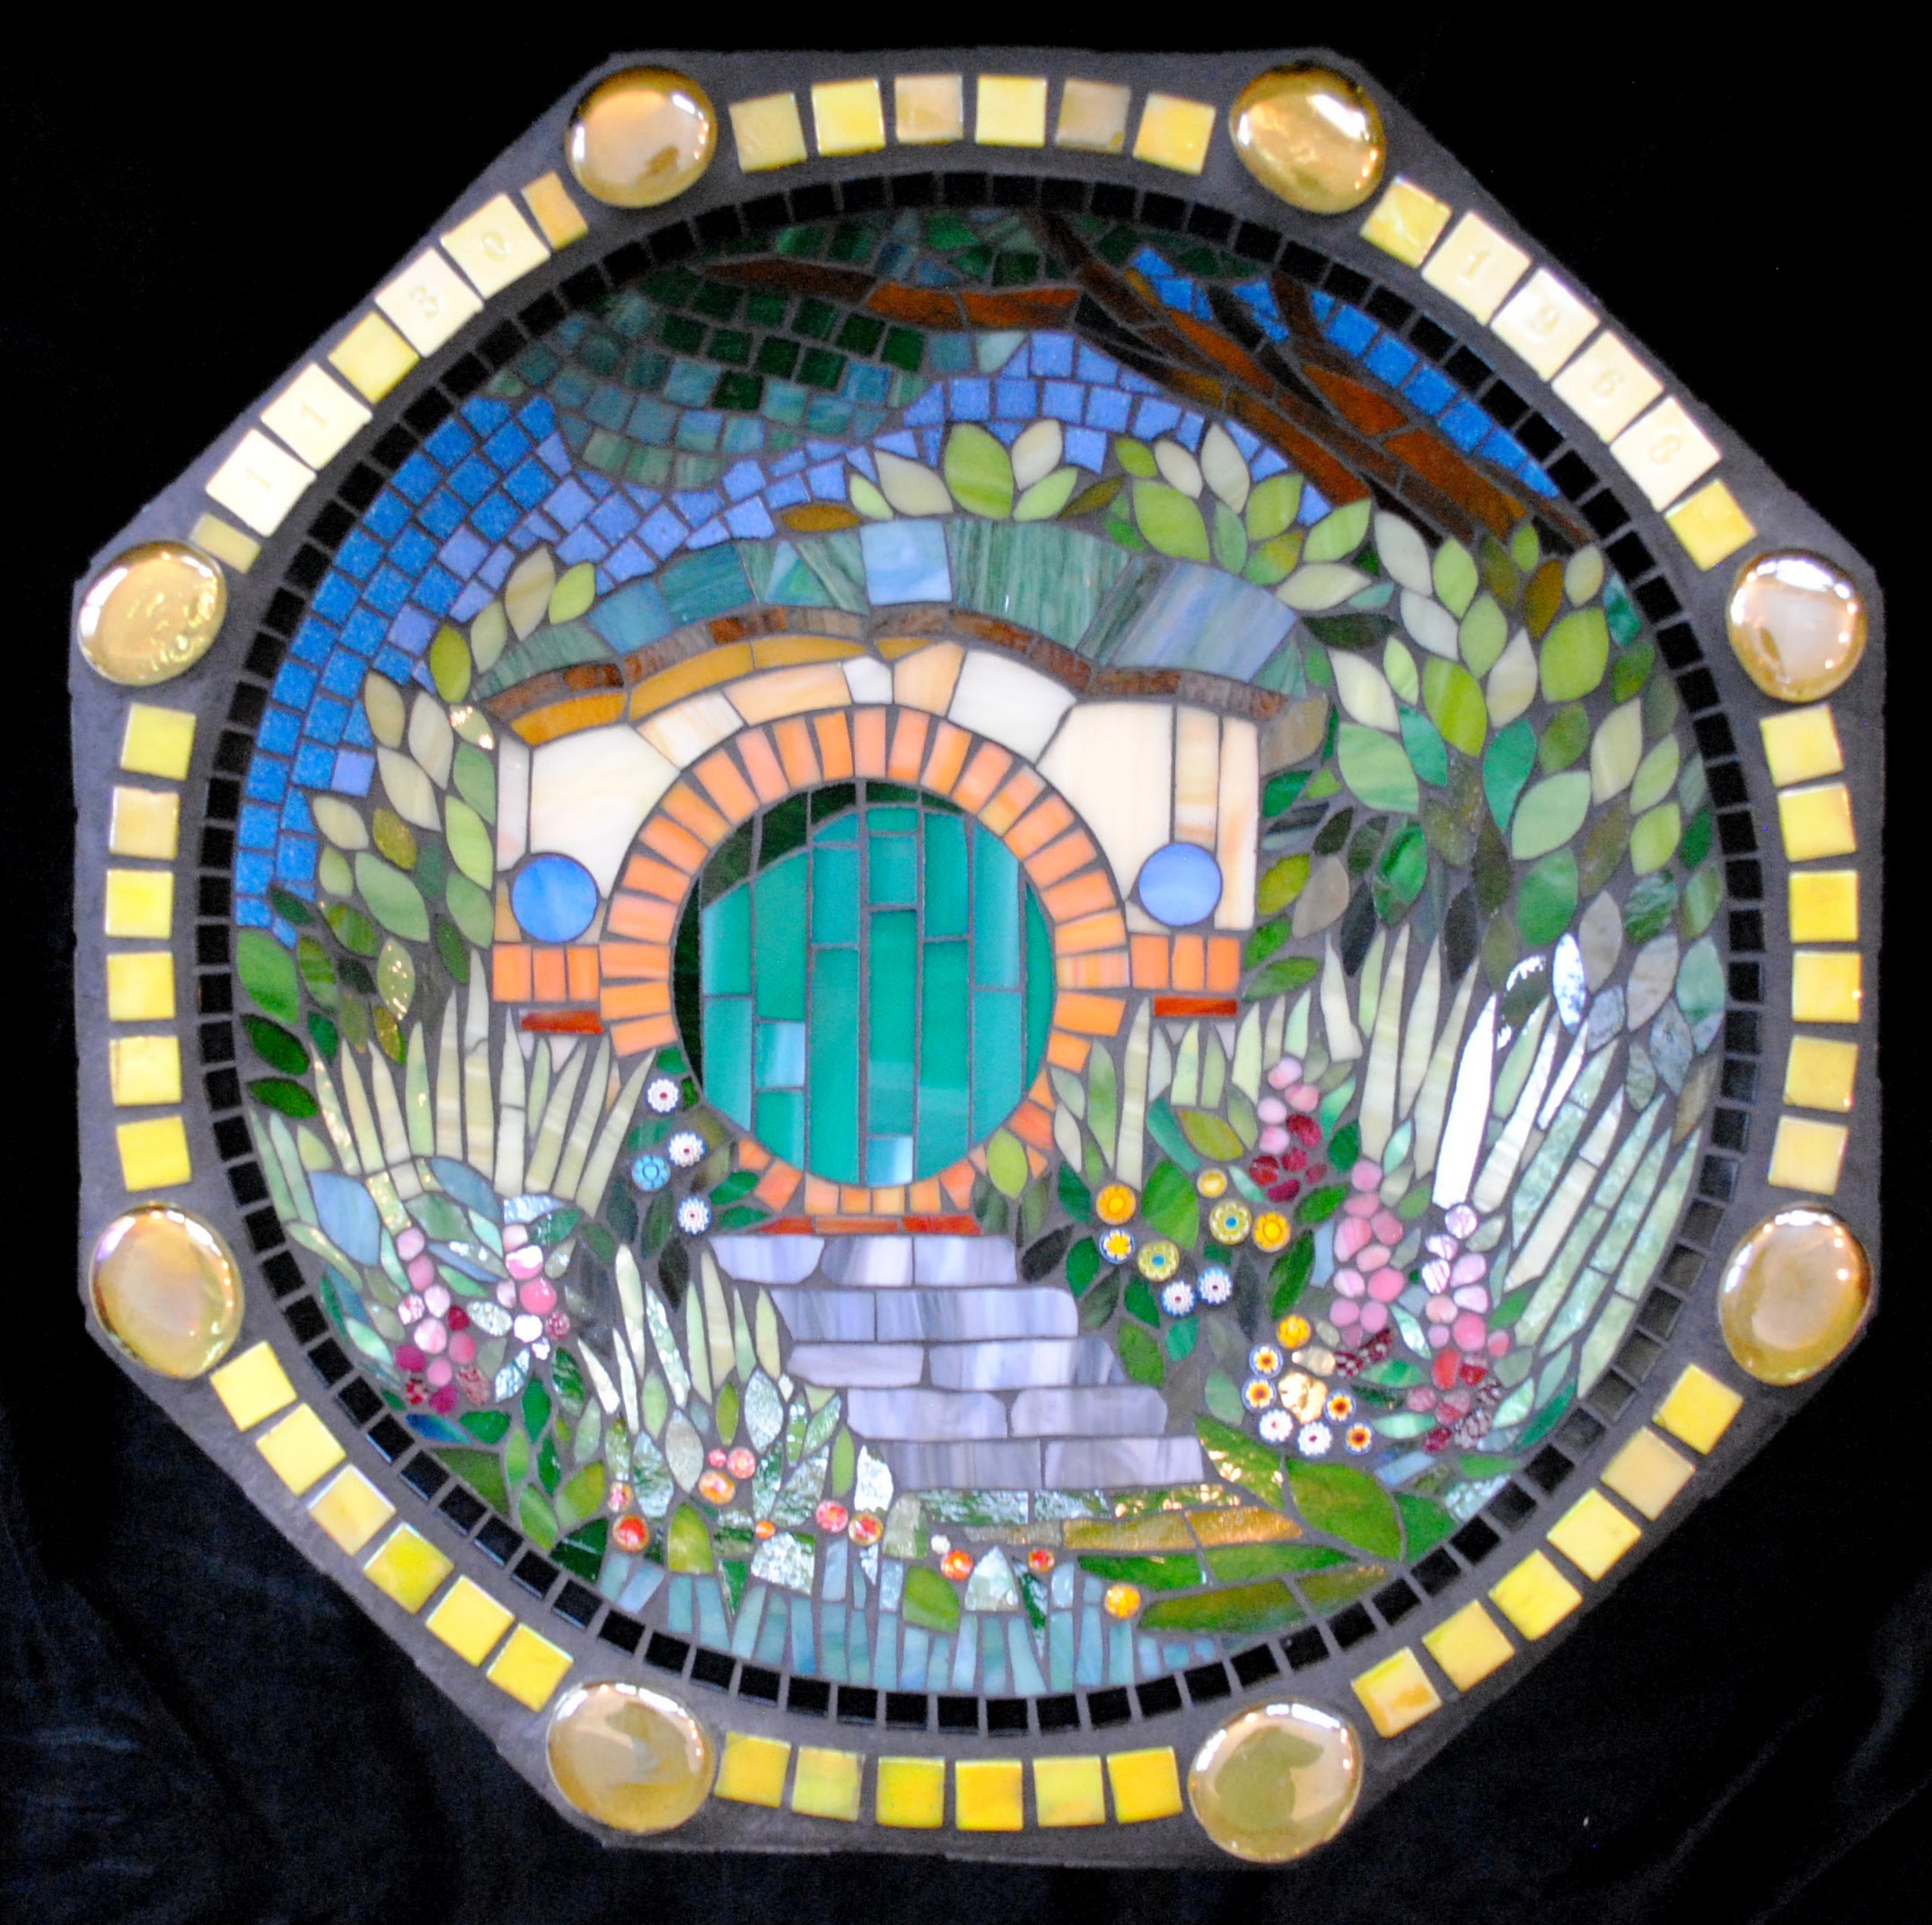 The Shire Mosaic Birdbath by Brenda Pokorny